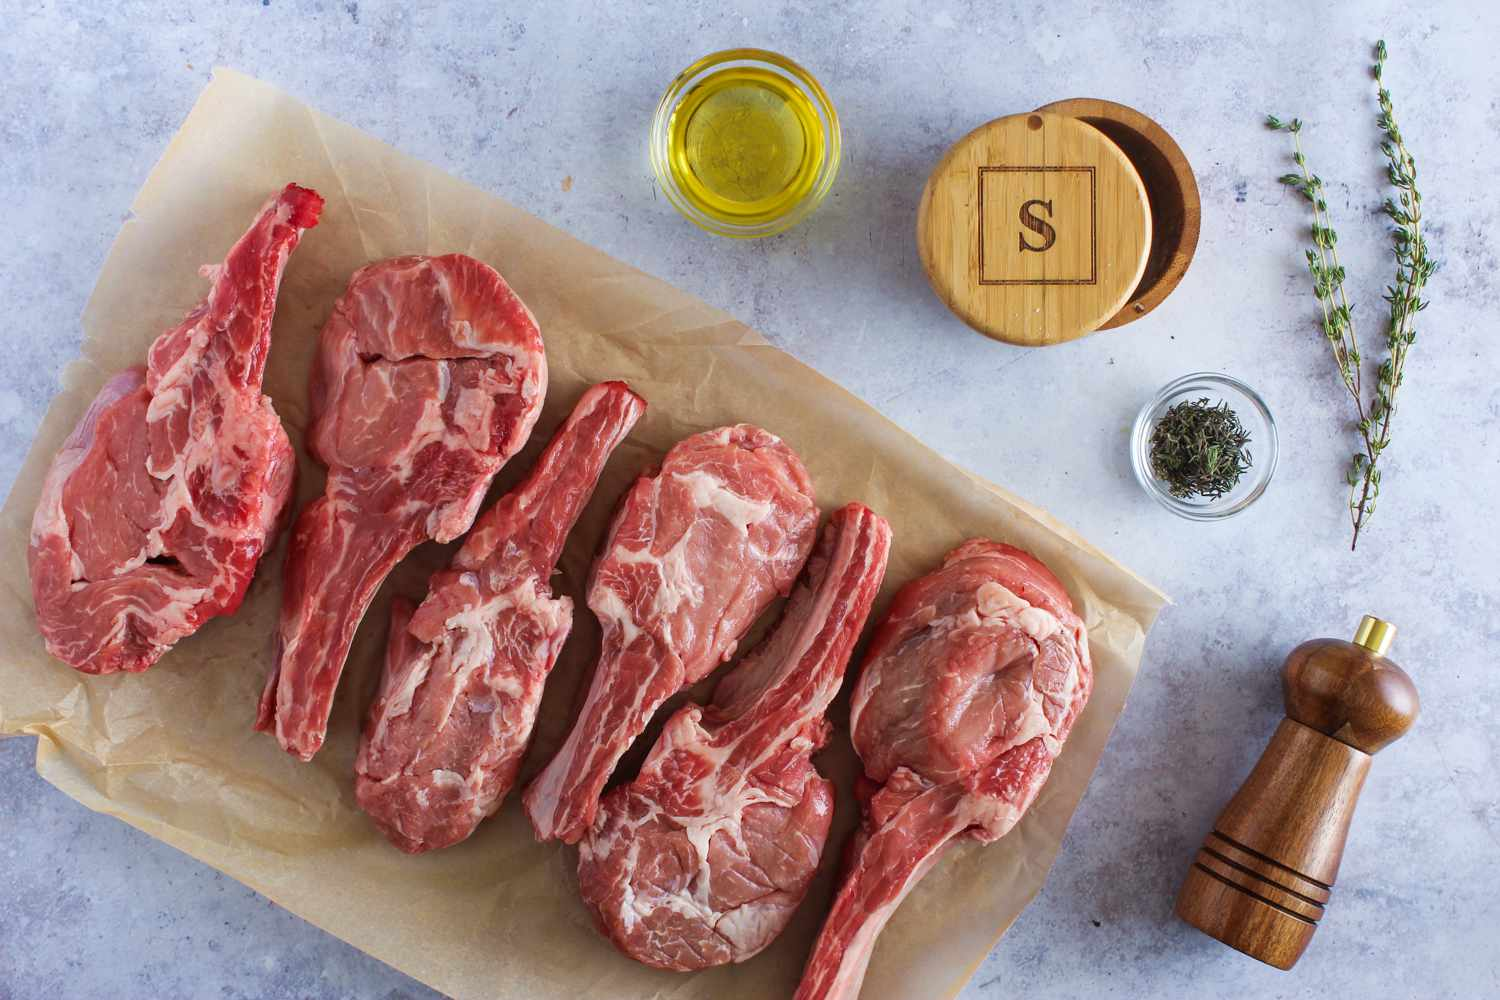 Ingredients for grilled veal chops